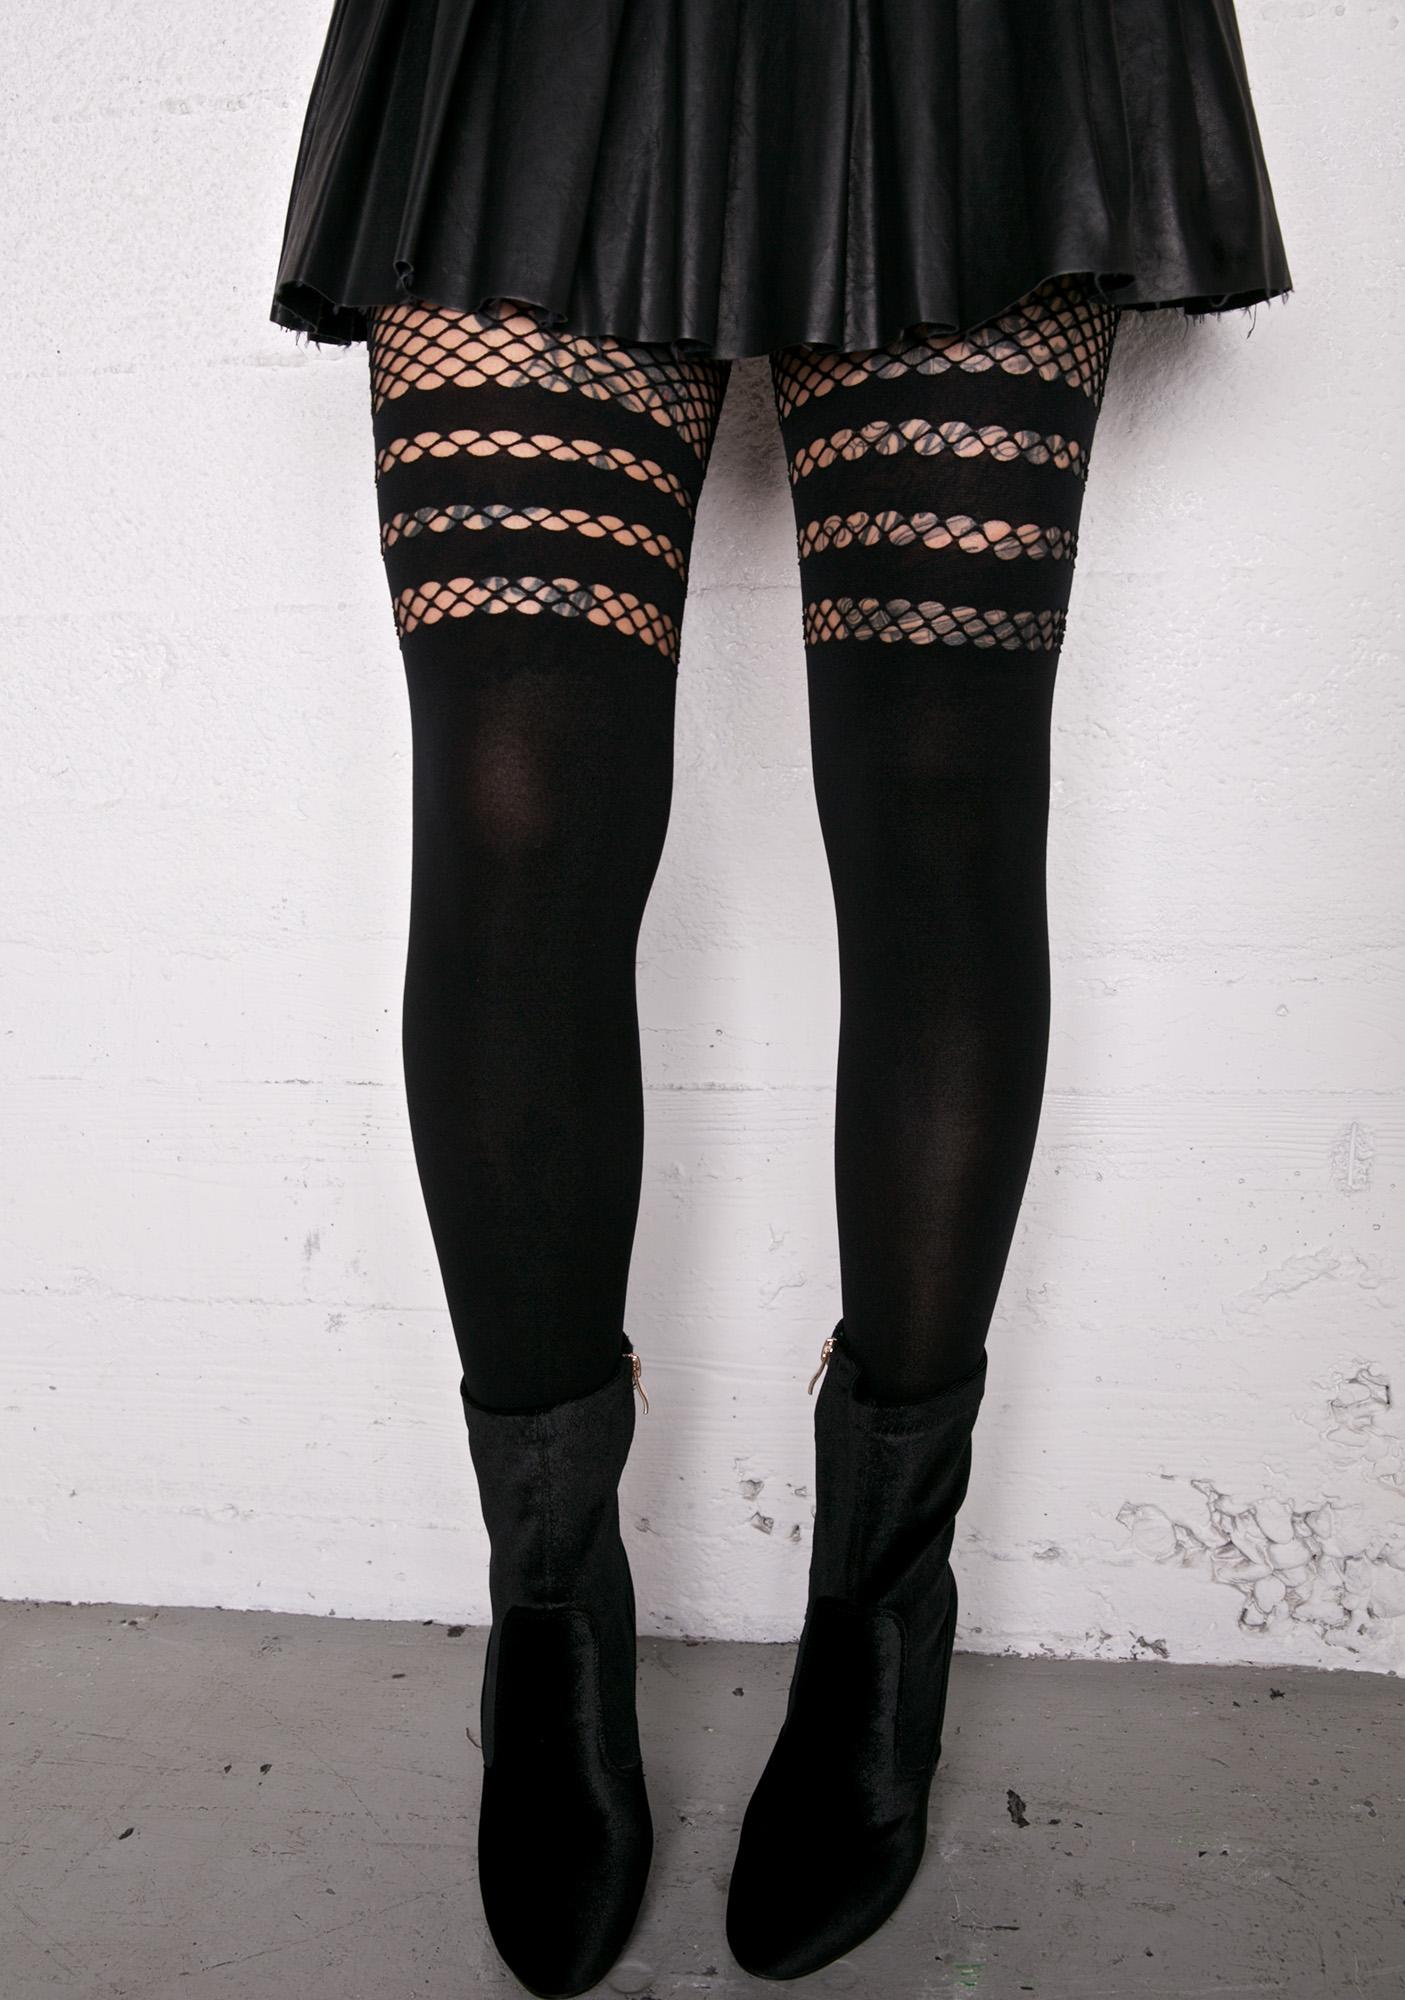 nn thigh high stockings